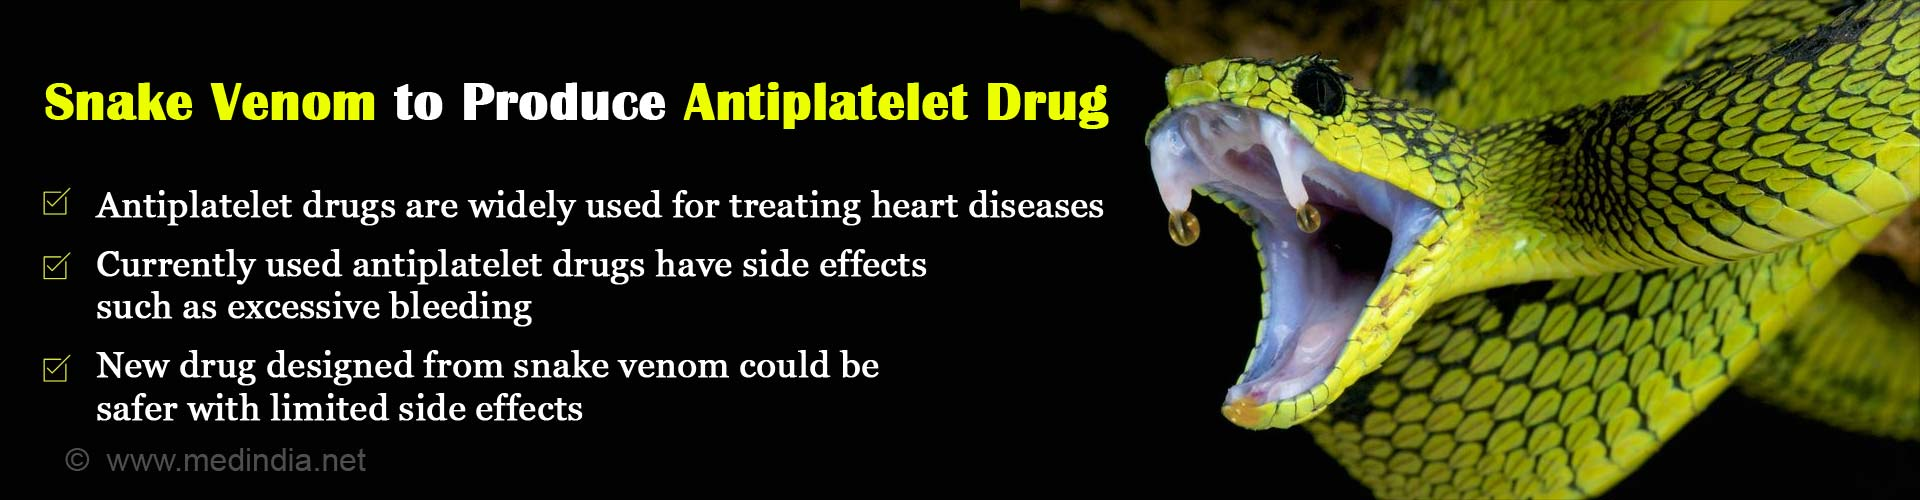 New, Safer Antiplatelet Drug from Snake Venom